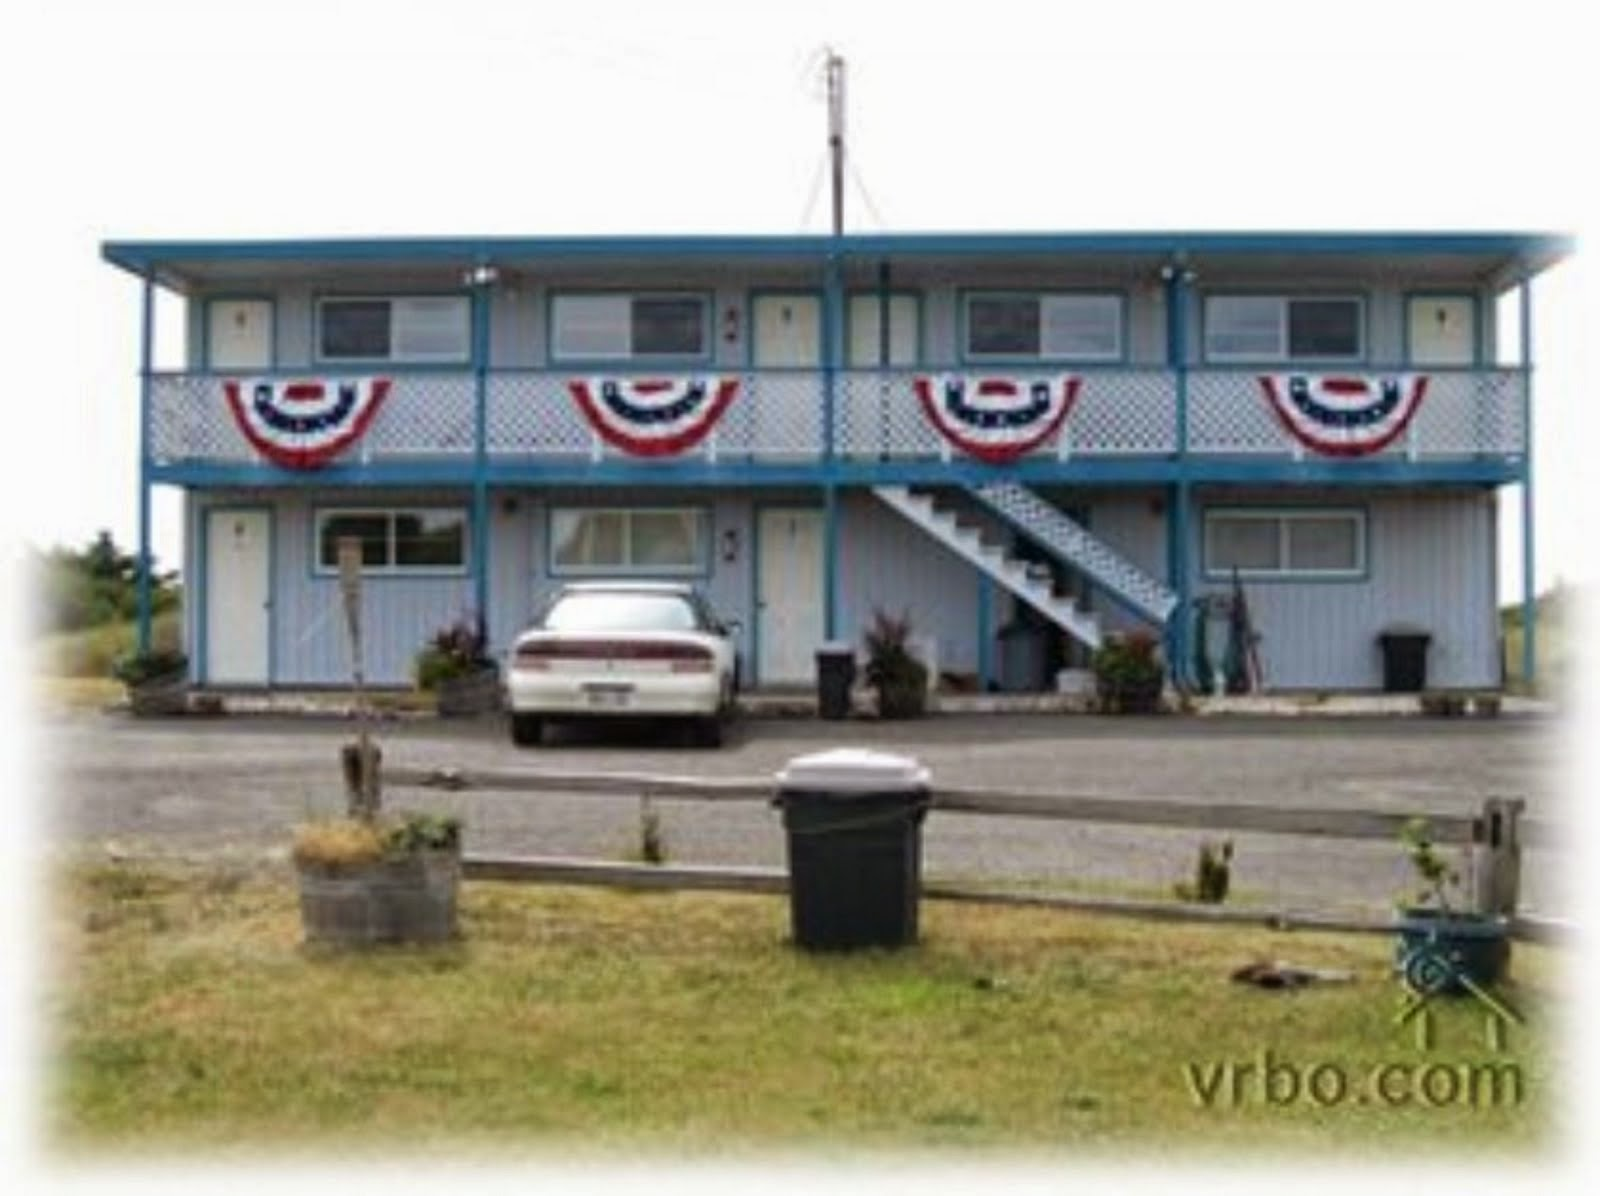 OUR APARTMENT BUILDING AT OCEAN SHORES, WA 98550